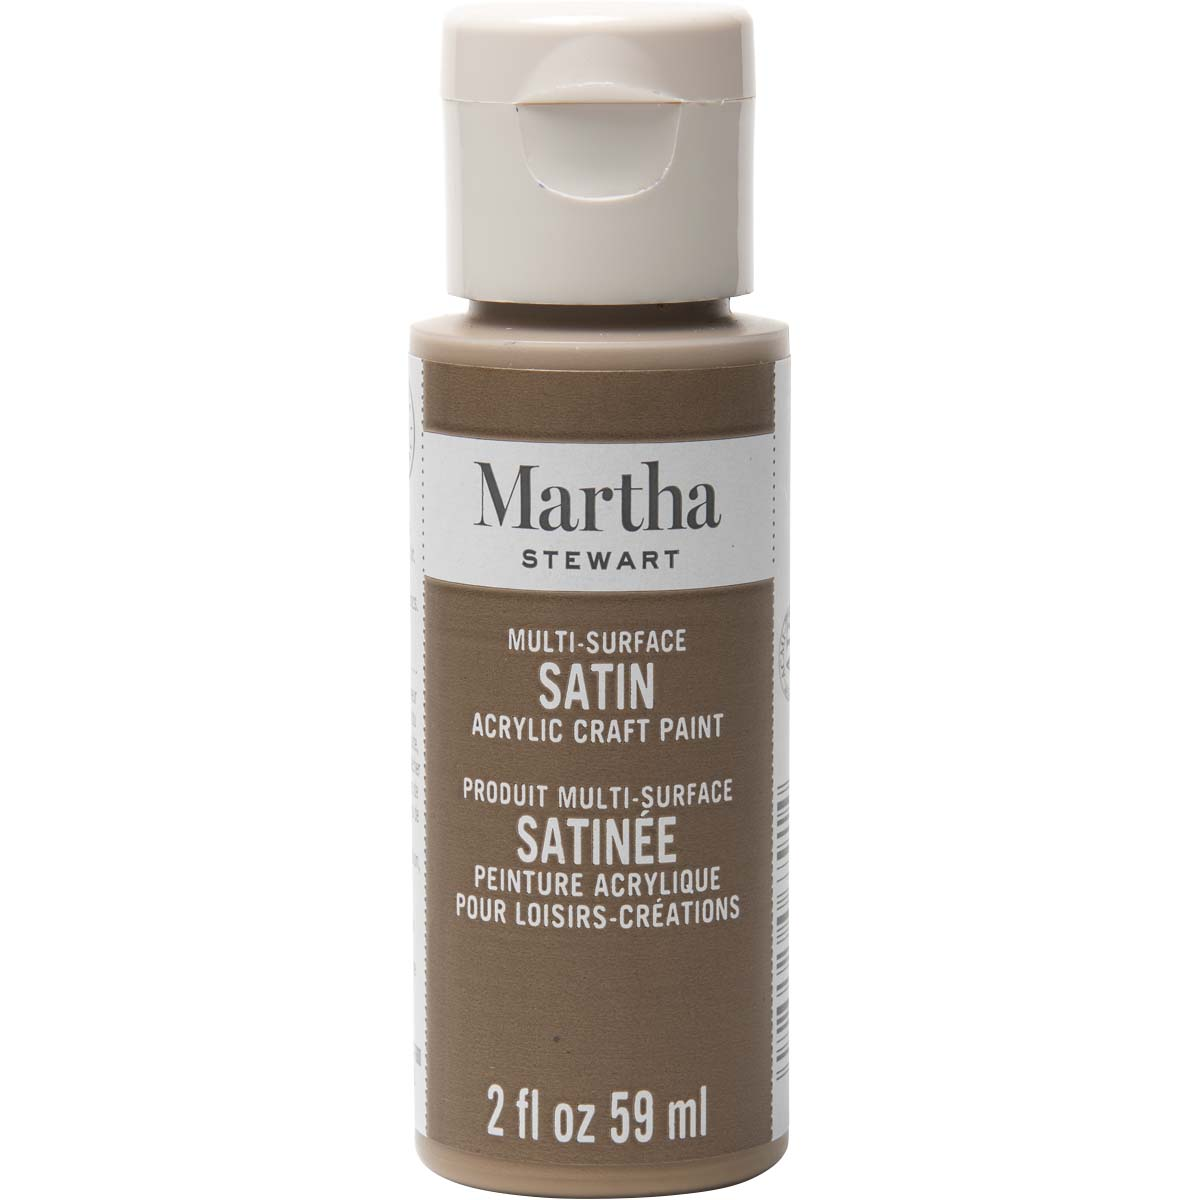 Martha Stewart ® Multi-Surface Satin Acrylic Craft Paint - Sycamore Bark, 2 oz.